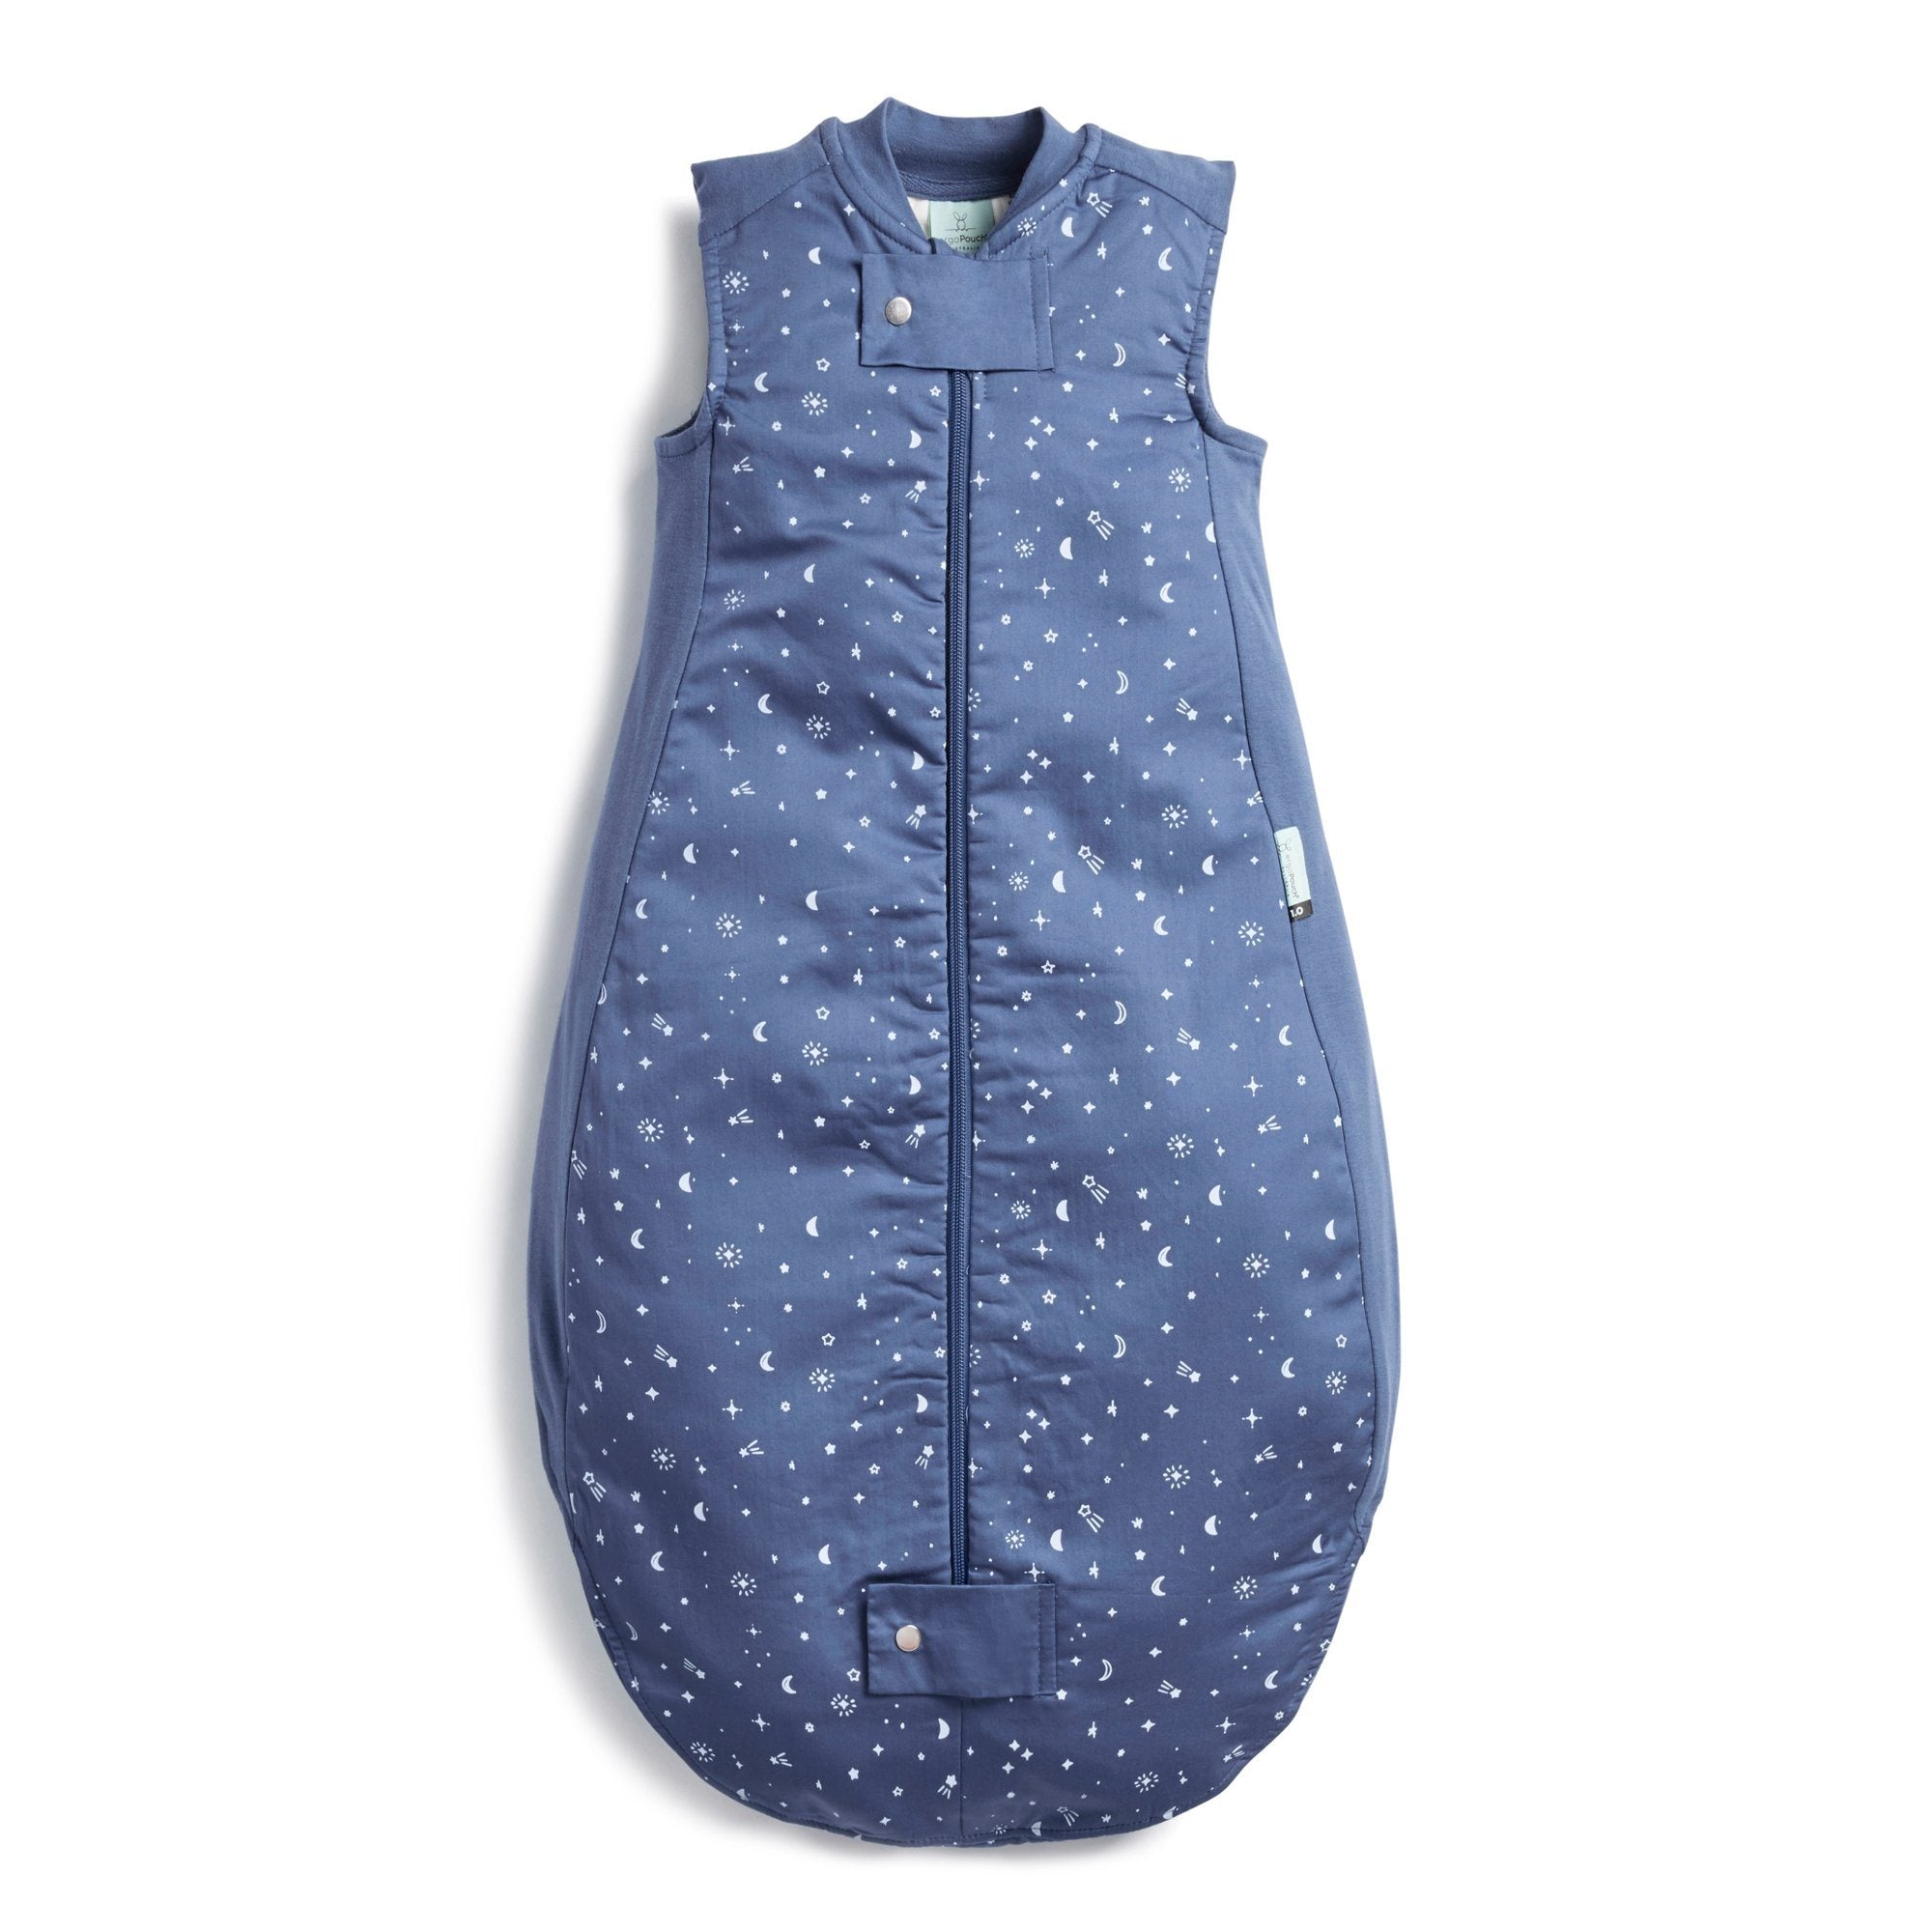 Sheeting Sleeping Bag 0.3 tog (Night Sky)